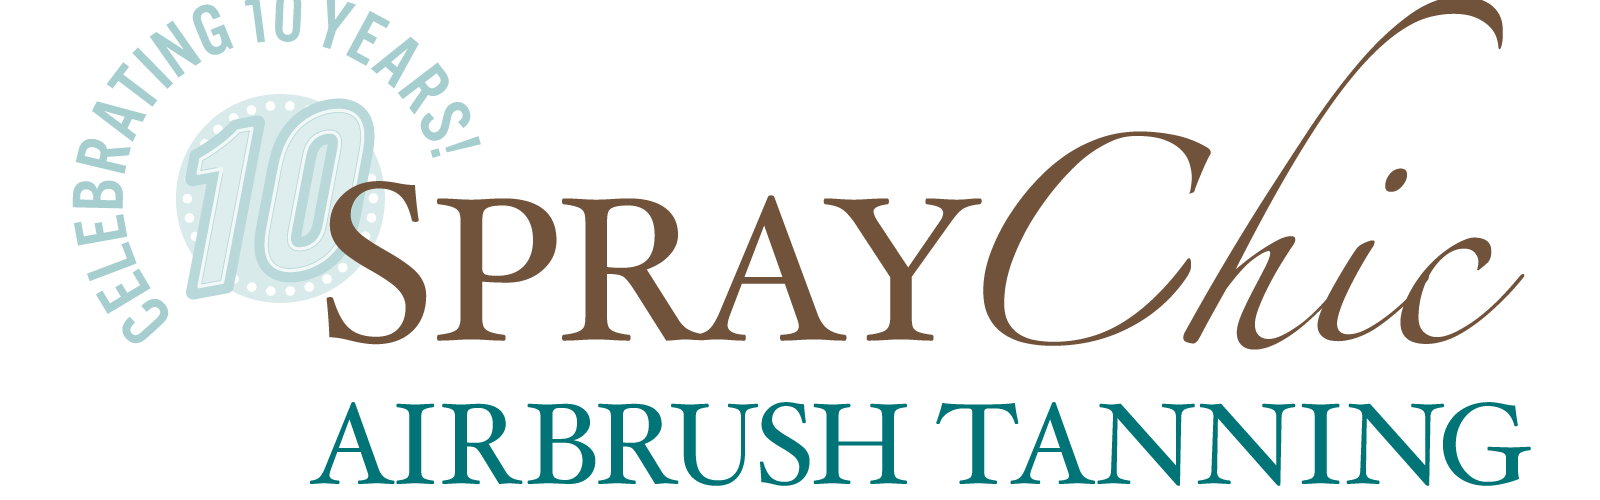 SprayChic Celebrating 10 Years of Spray Tanning!